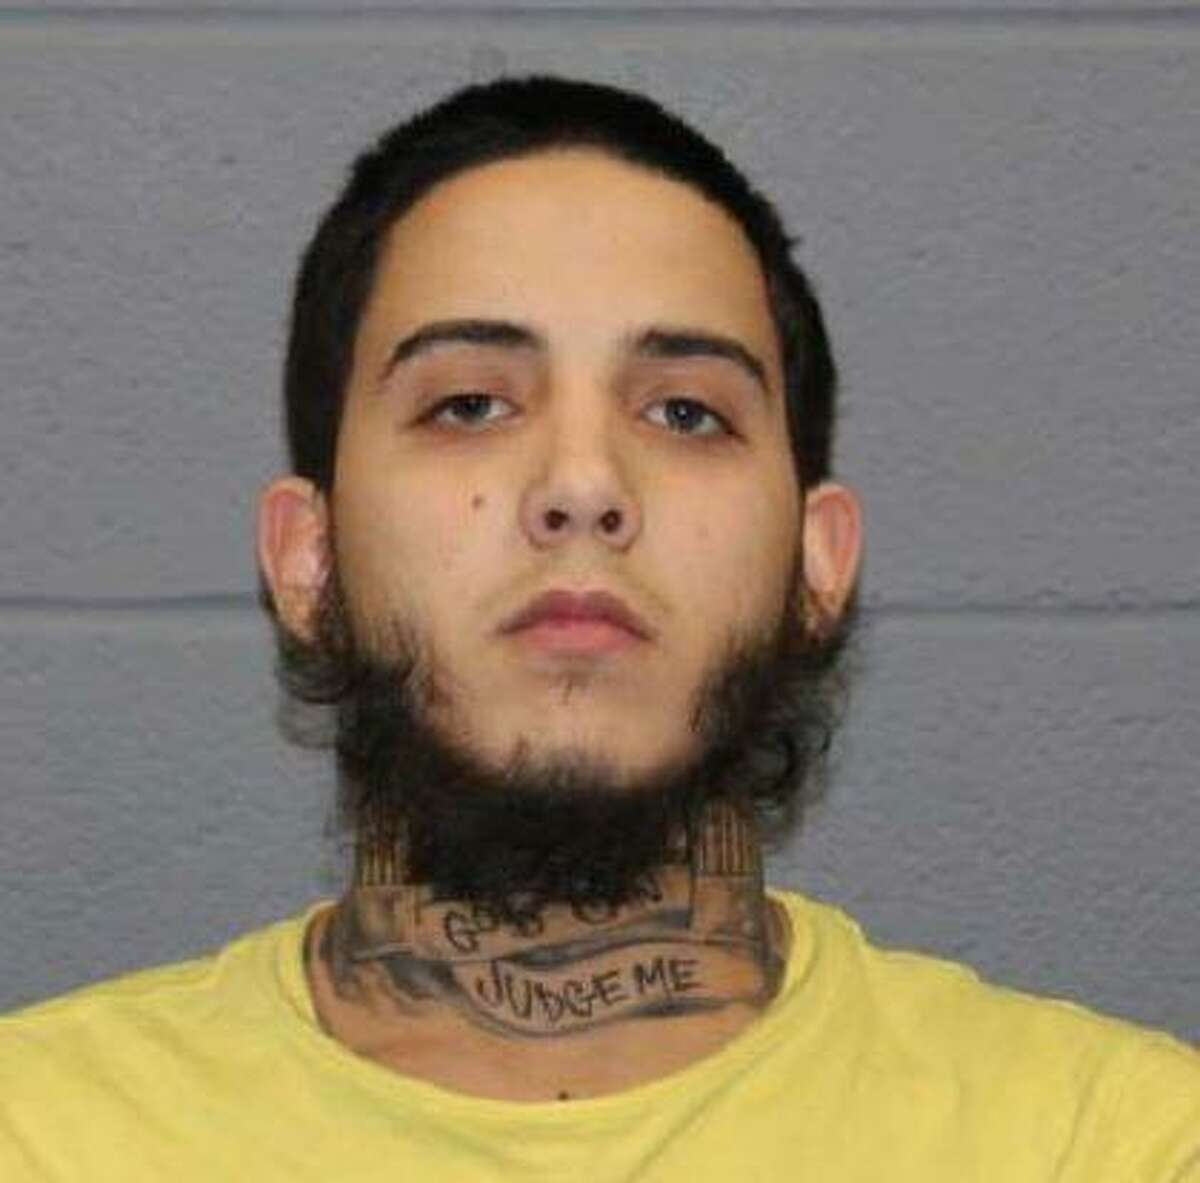 Justin Cabrera, 21, of Waterbury, Conn., with murder, criminal use of a weapon, illegal discharge of a firearm, first-degree reckless endangerment, carrying a pistol without a permit, illegal possession of a weapon in a motor vehicle and illegal transfer of a pistol/revolver.